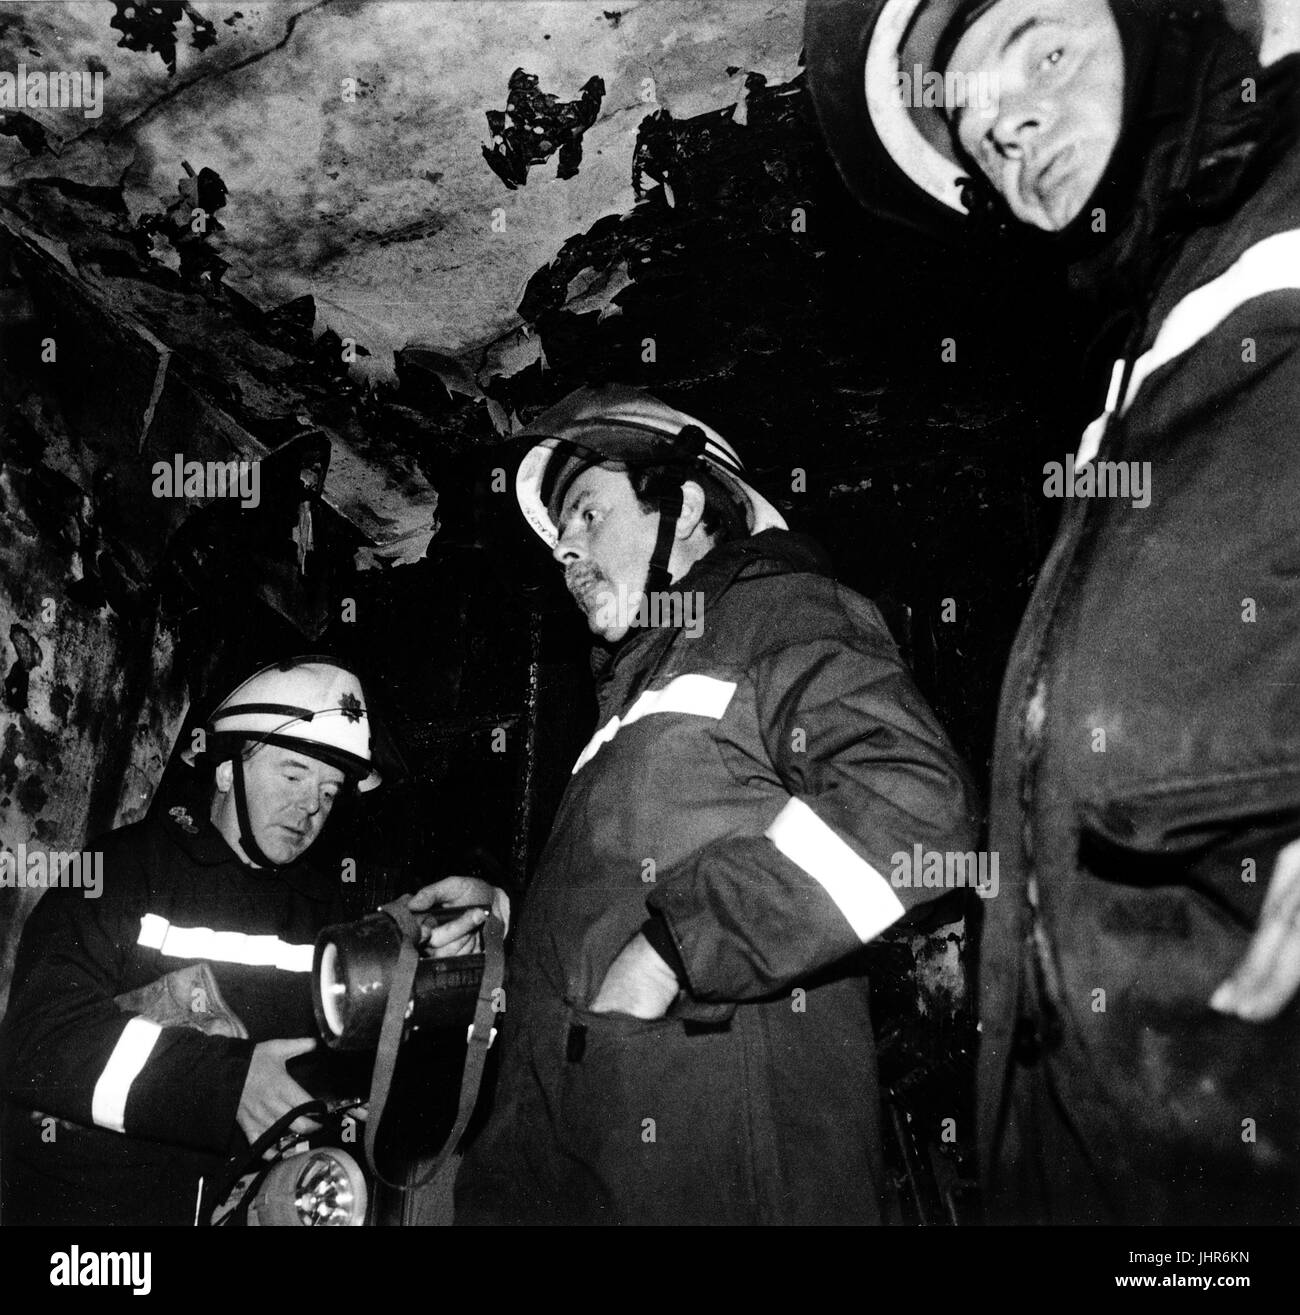 Station officer from West Midlands Fire Brigade (centre) inspects aftermath of flat fire in Wolverhampton - Stock Image